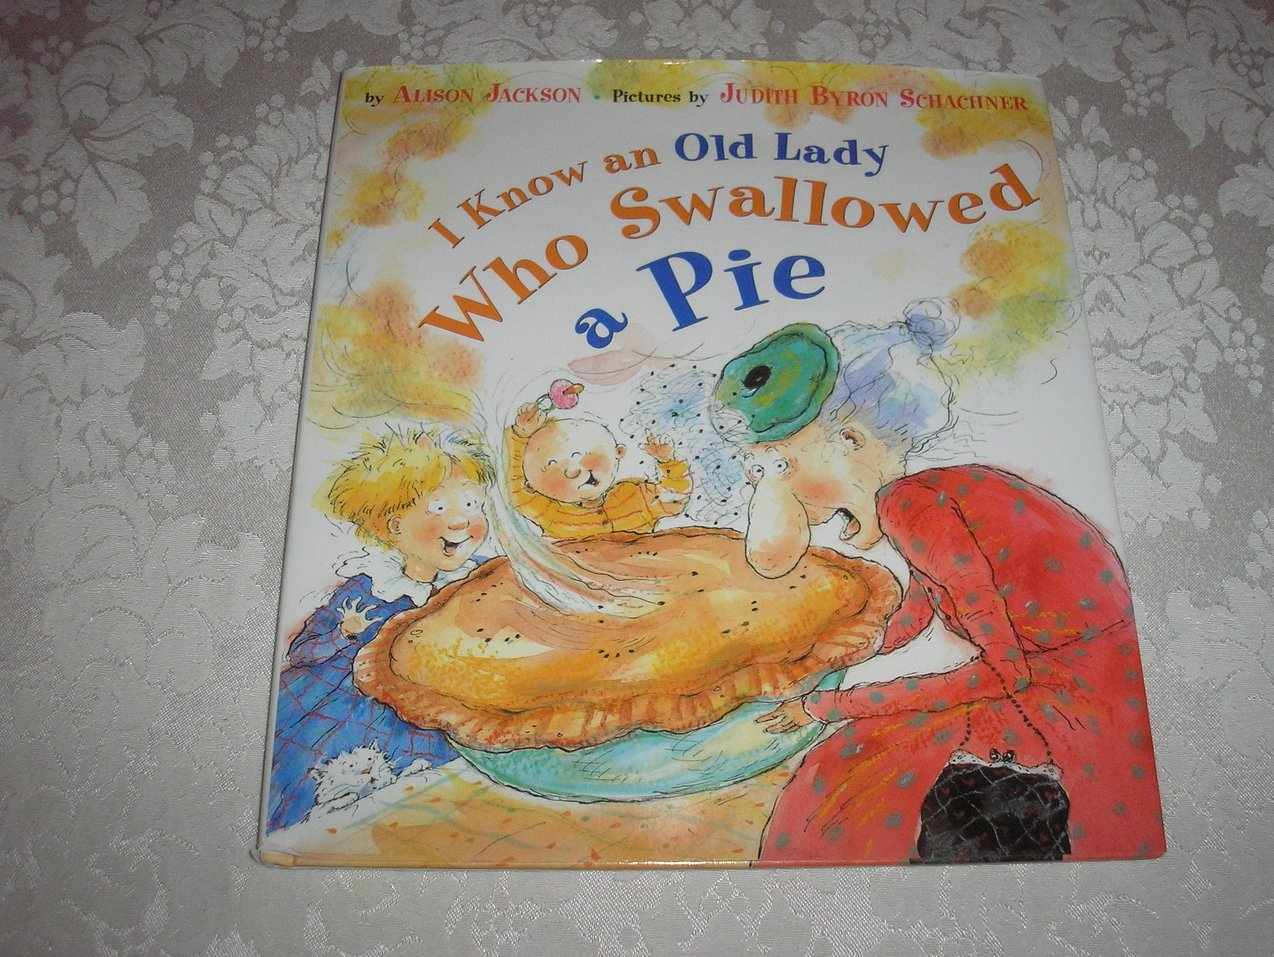 I Know an Old Lady Who Swallowed a Pie 1997 First Edition hardcover with dj